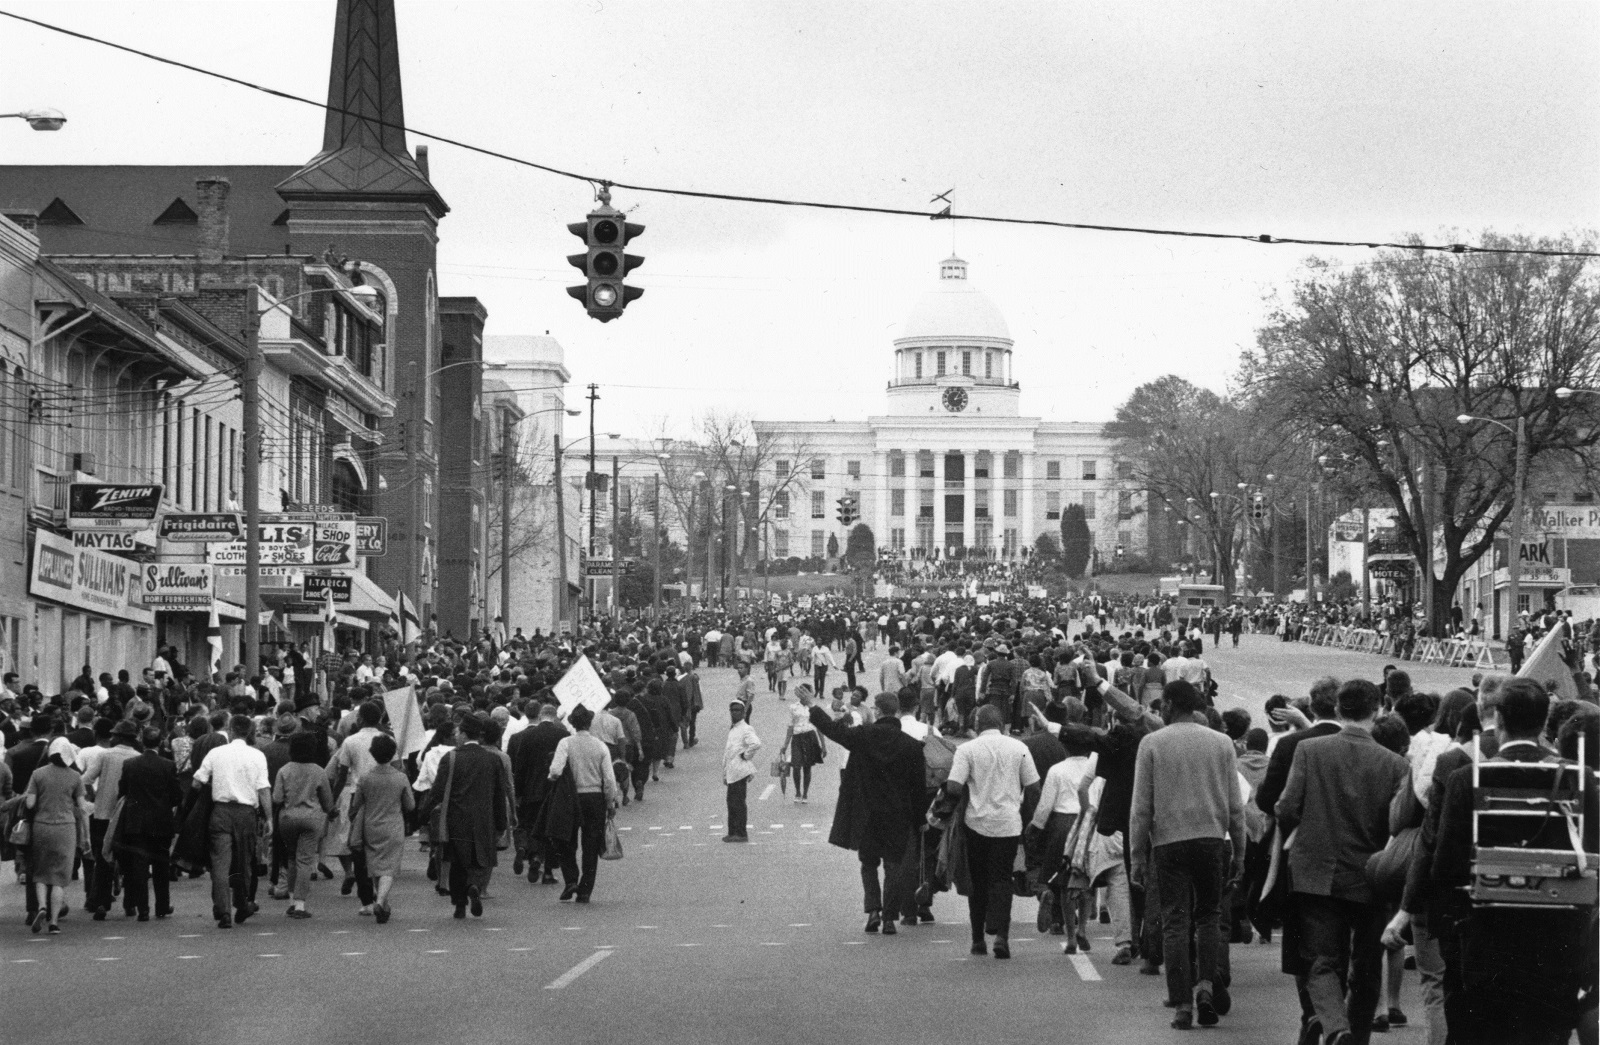 selma march Find and save ideas about selma march on pinterest | see more ideas about martin luther king selma, civil rights march and martin luther king.